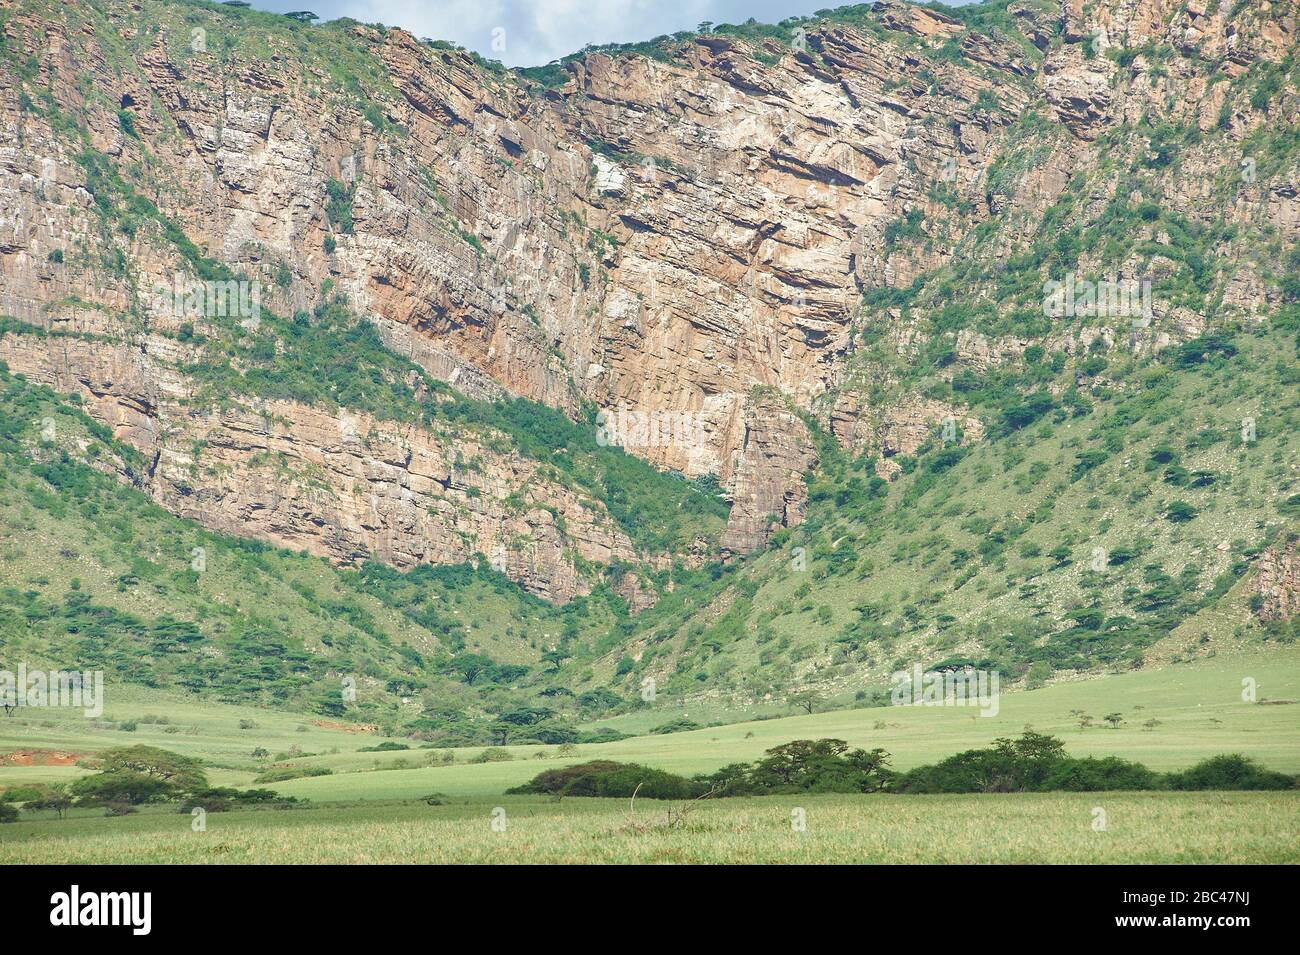 A sharp 400 metre drop off rocky wall, is part of the Rift Valley near Engorika, Sanyan (Northern Tanzania) Stock Photo